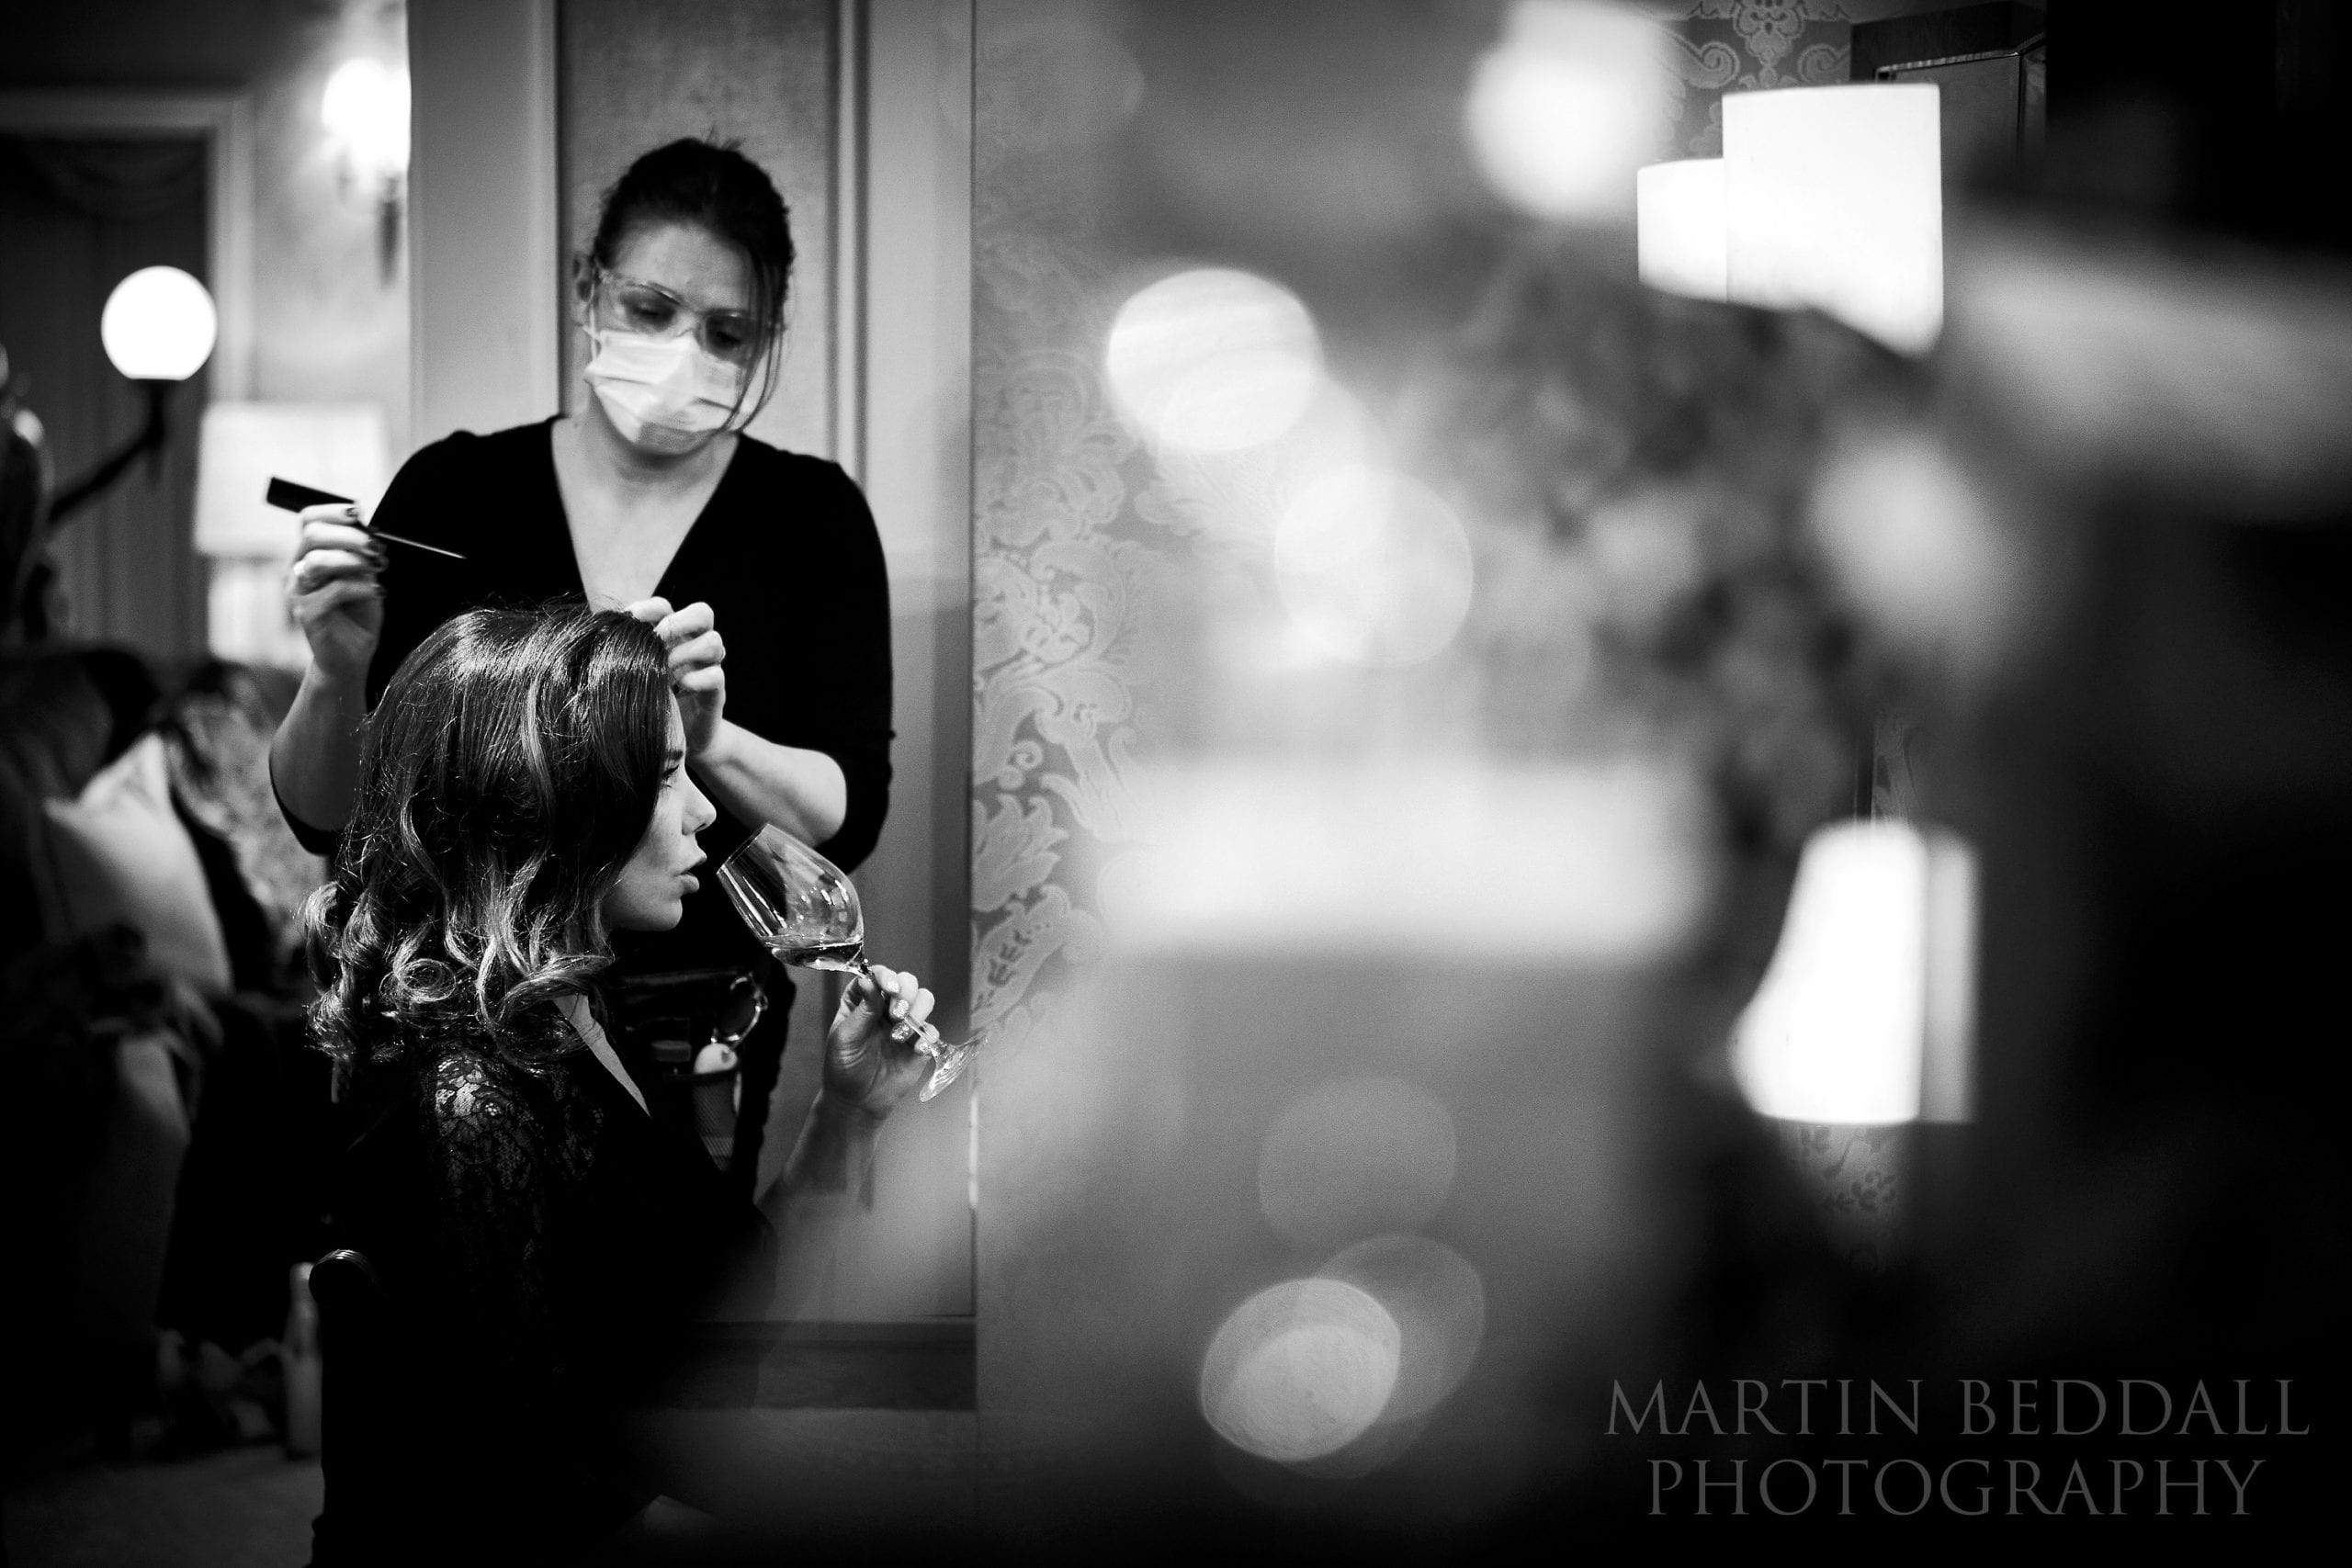 Bride getting ready at The Goring Hotel in London